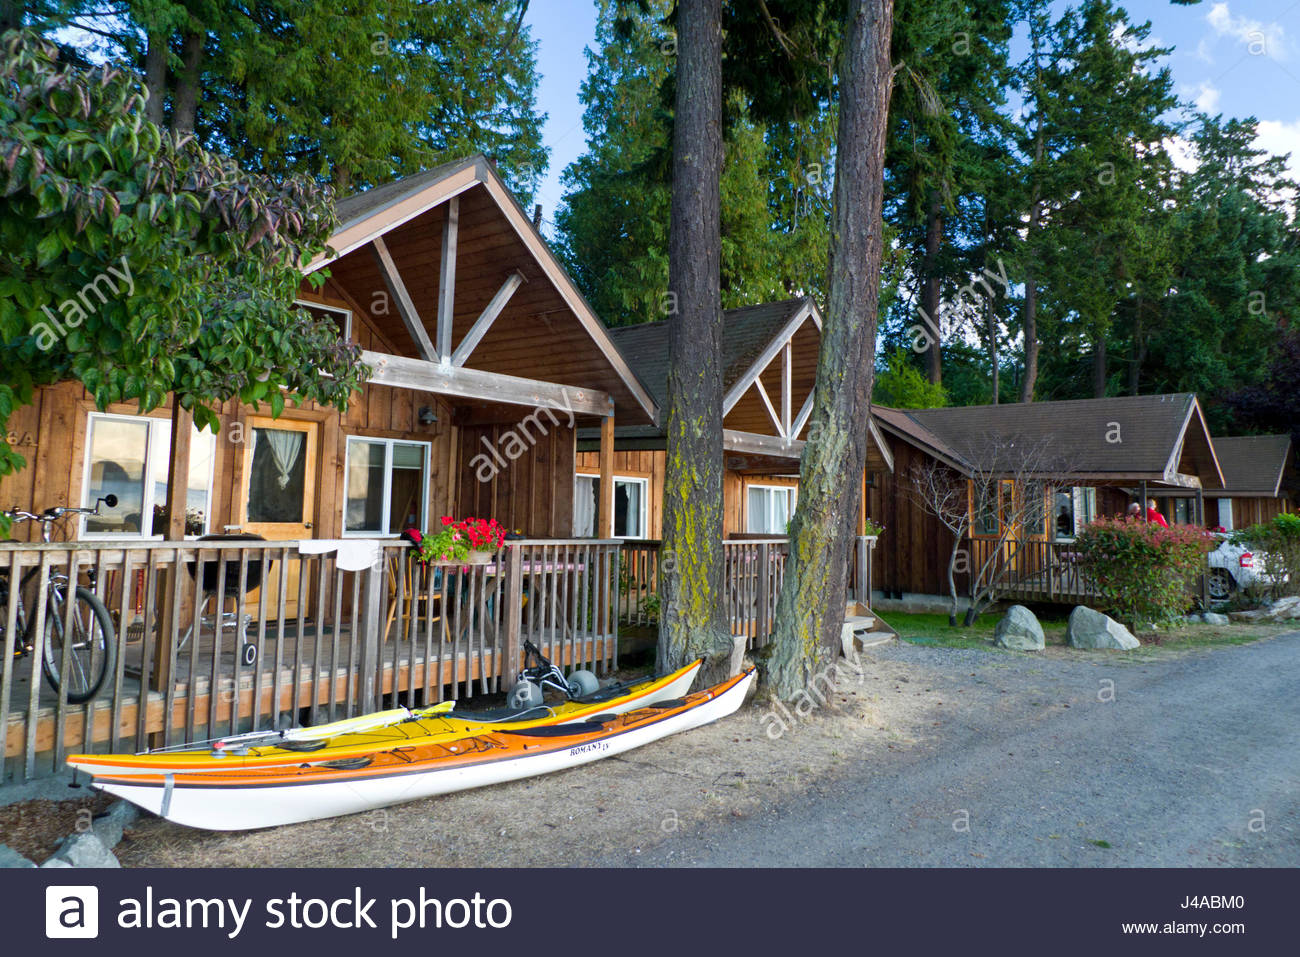 Vacation Cabins Along Kimple Beach At The West Beach Resort, Orcas Island,  San Juan County, Washington, USA